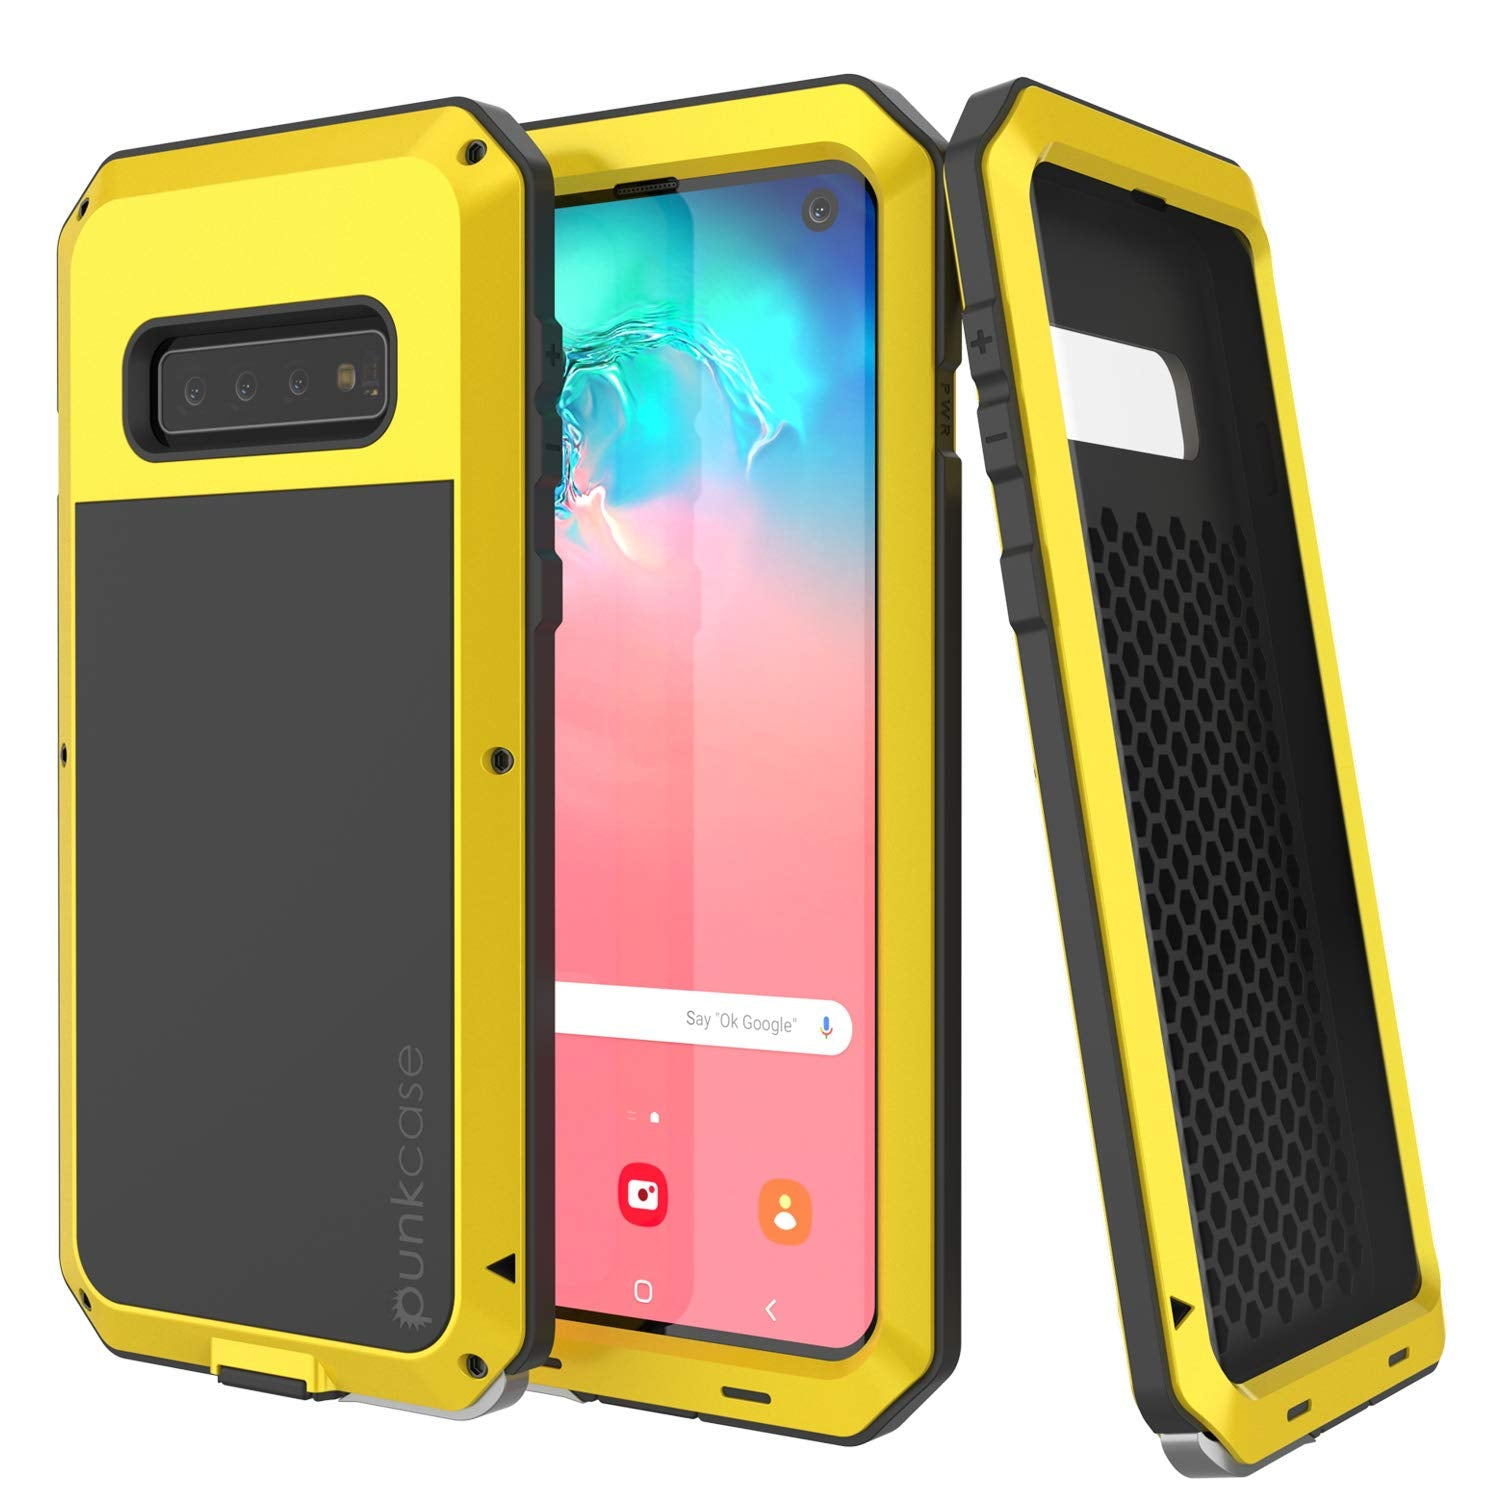 Galaxy S10 Metal Case, Heavy Duty Military Grade Rugged Armor Cover [Neon]